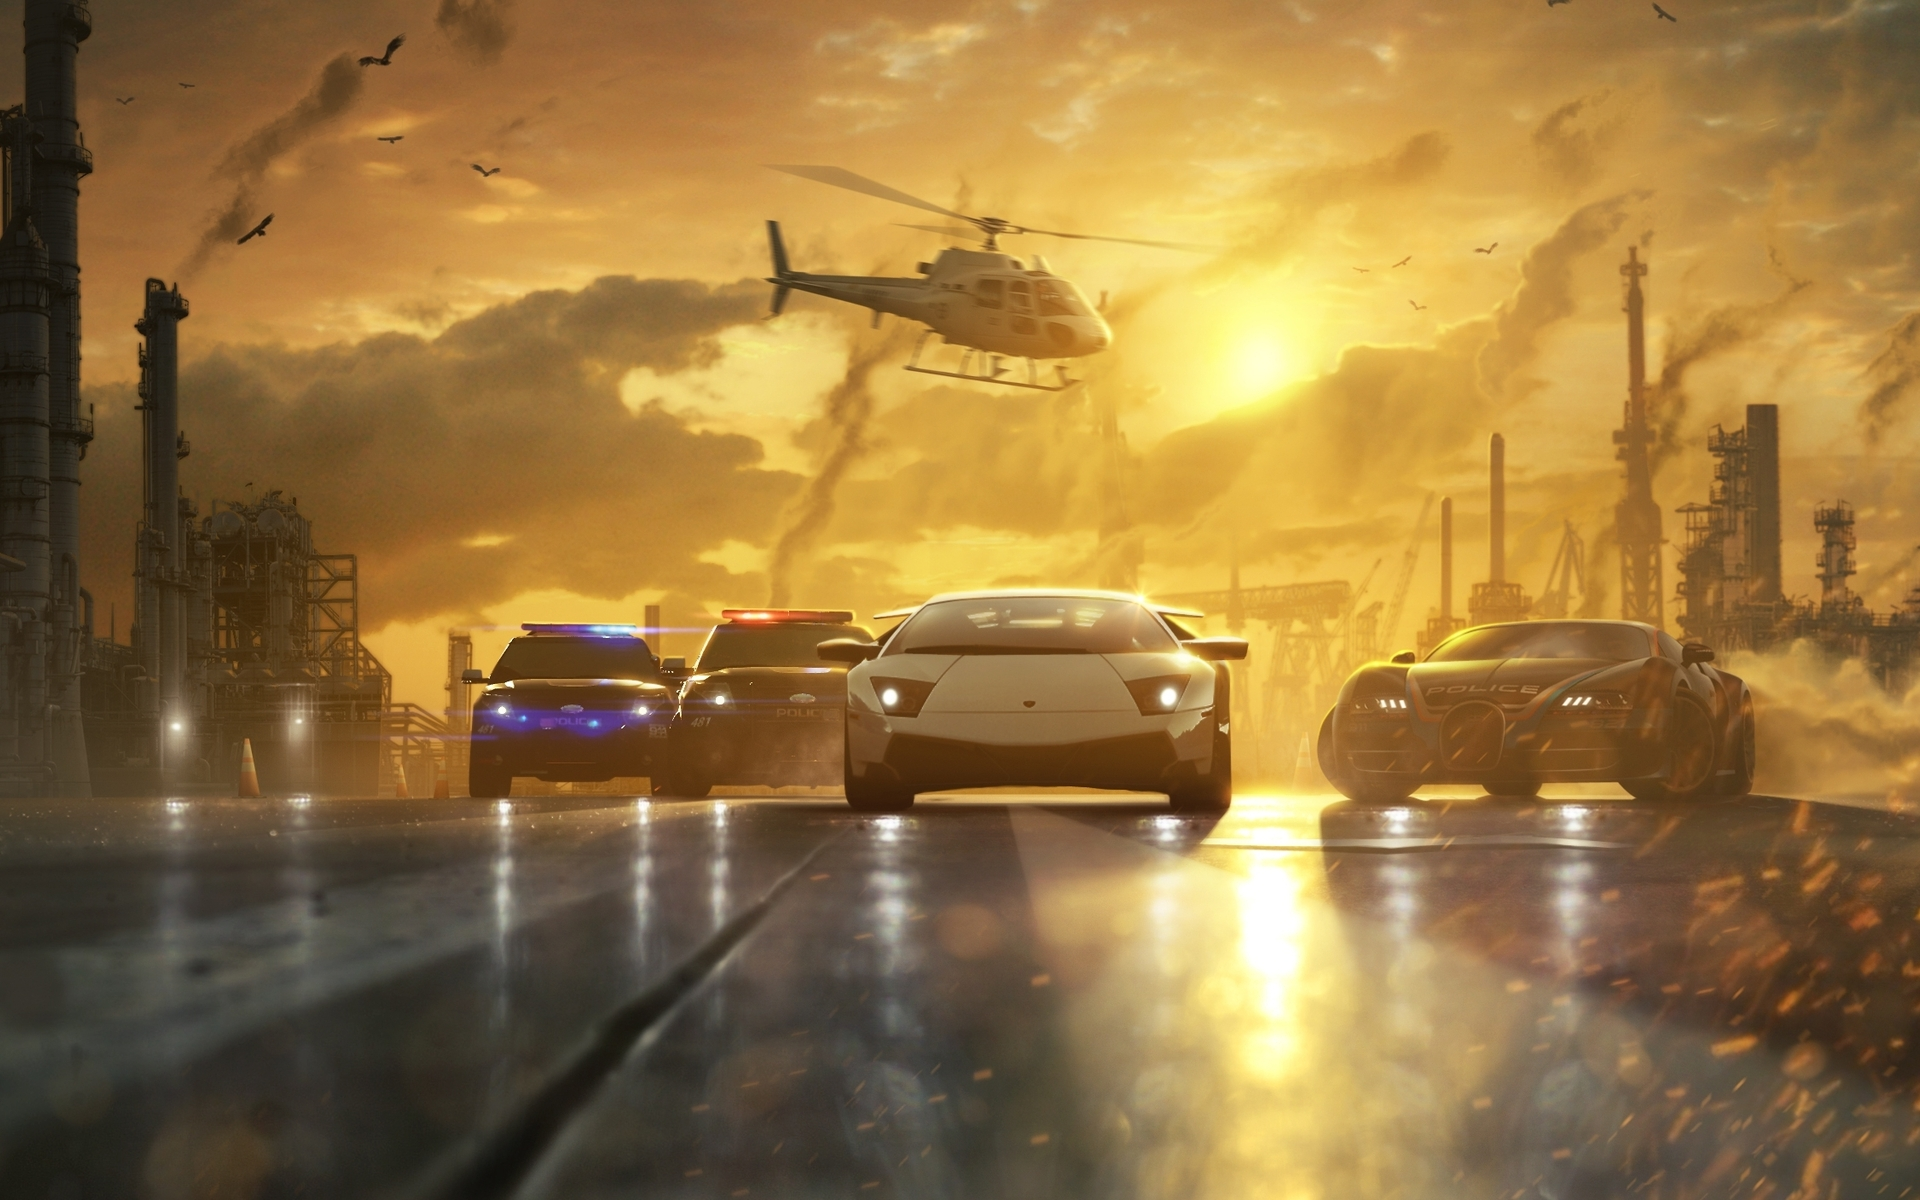 753 need for speed hd wallpapers background images for Need for speed wallpaper